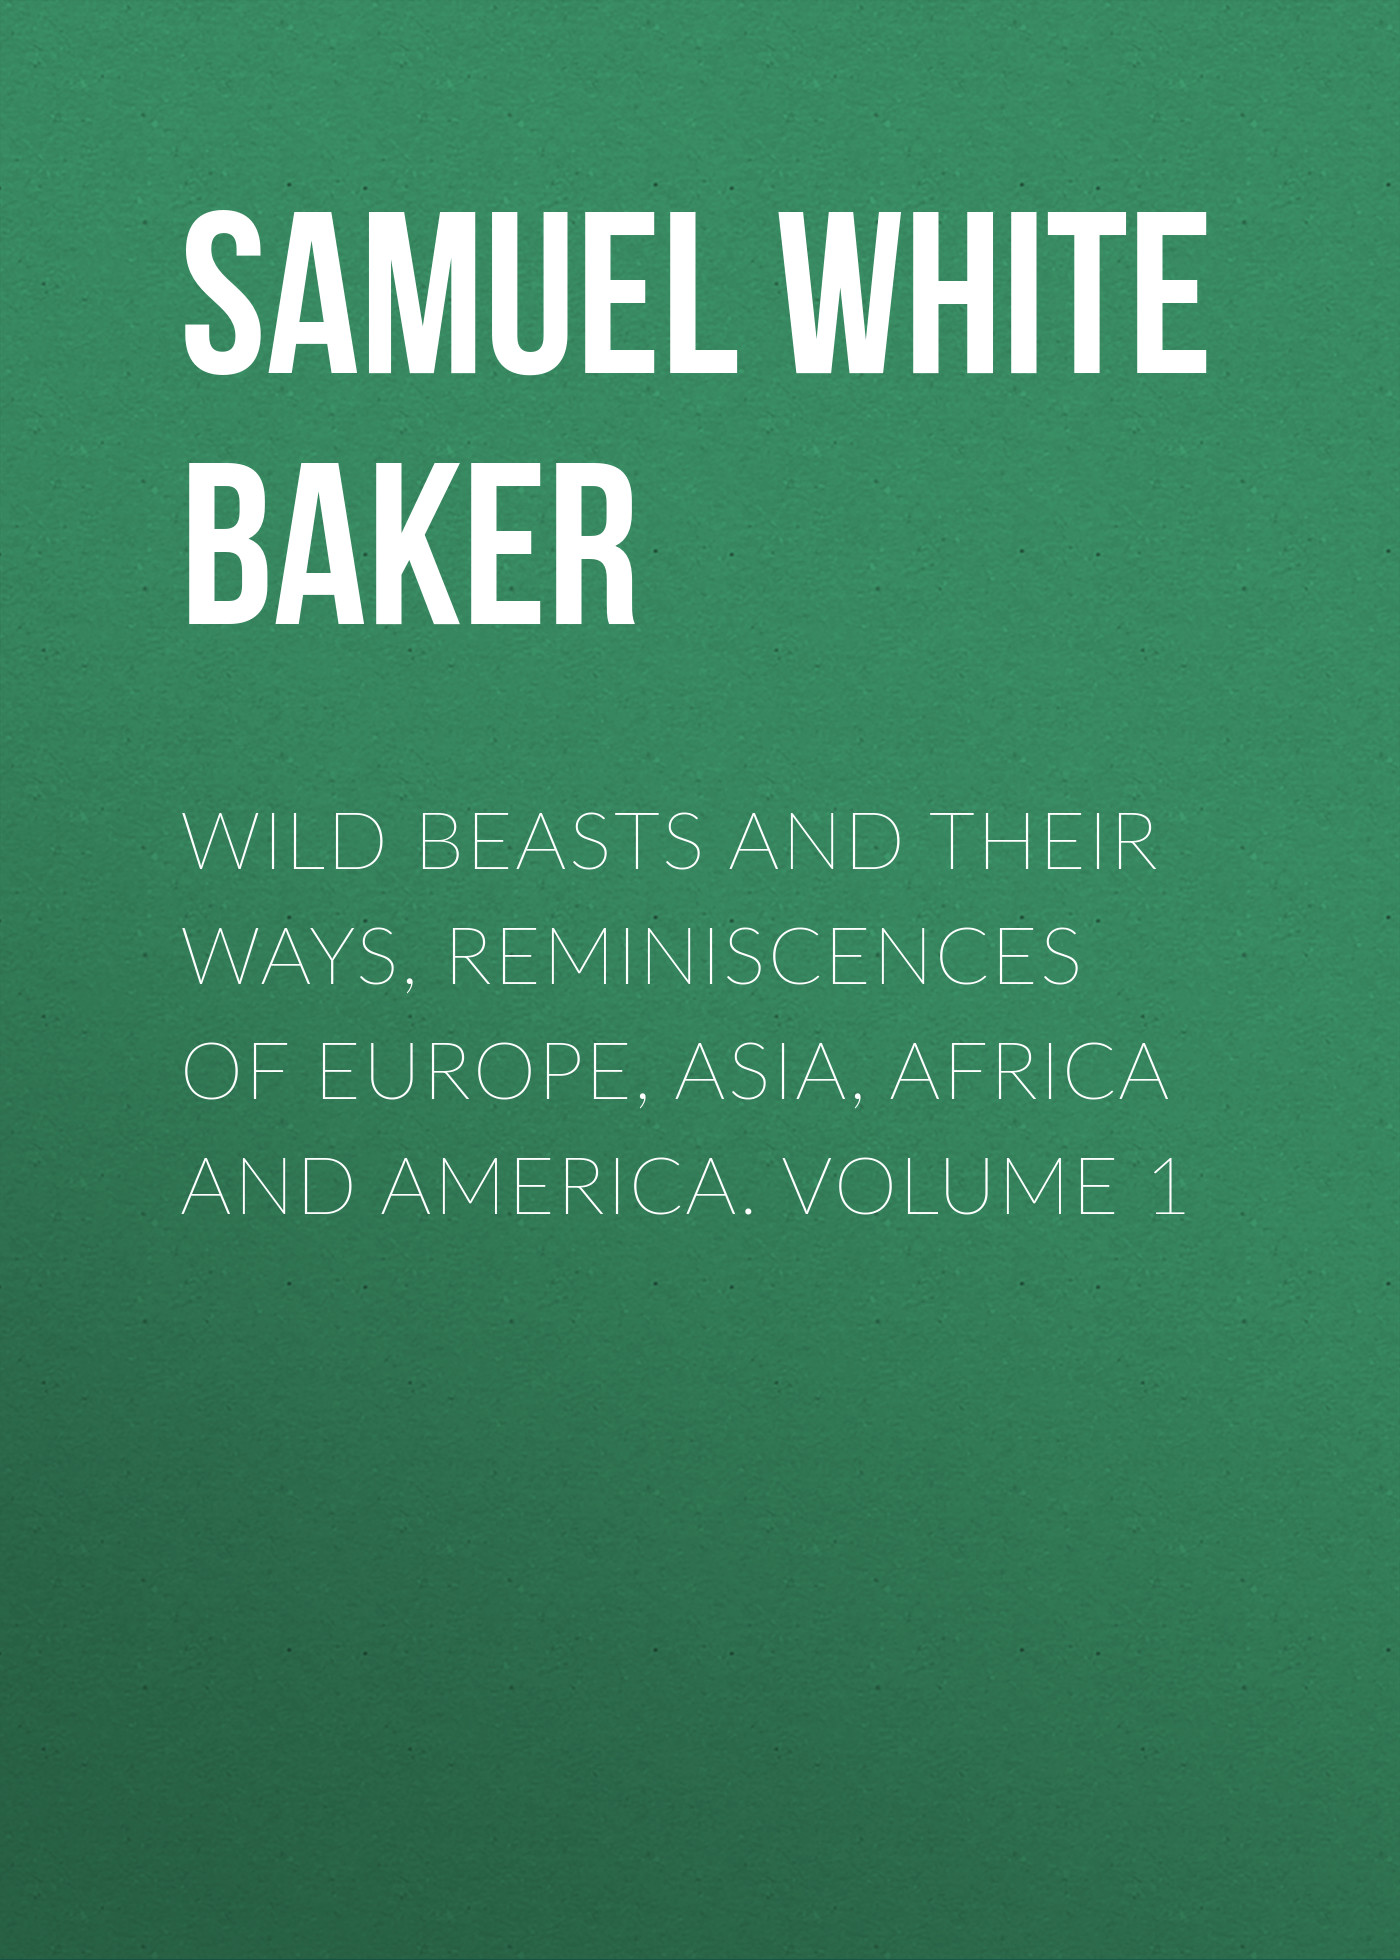 Samuel White Baker Wild Beasts and Their Ways, Reminiscences of Europe, Asia, Africa and America. Volume 1